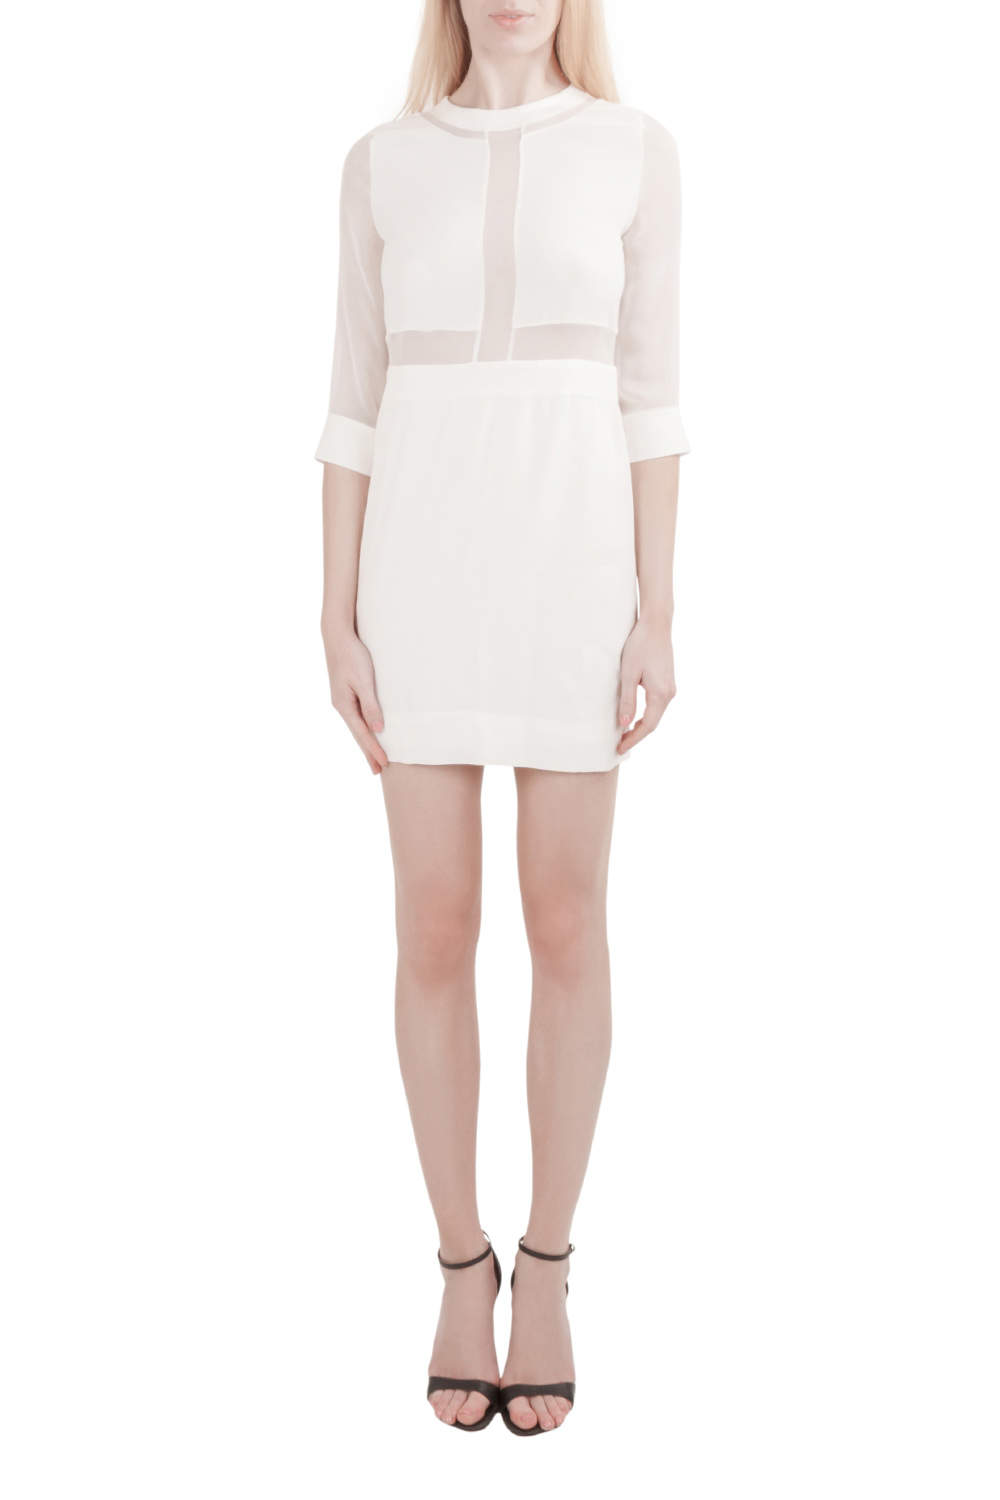 IRO White Silk Crepe Panelled Tina Mini Dress S